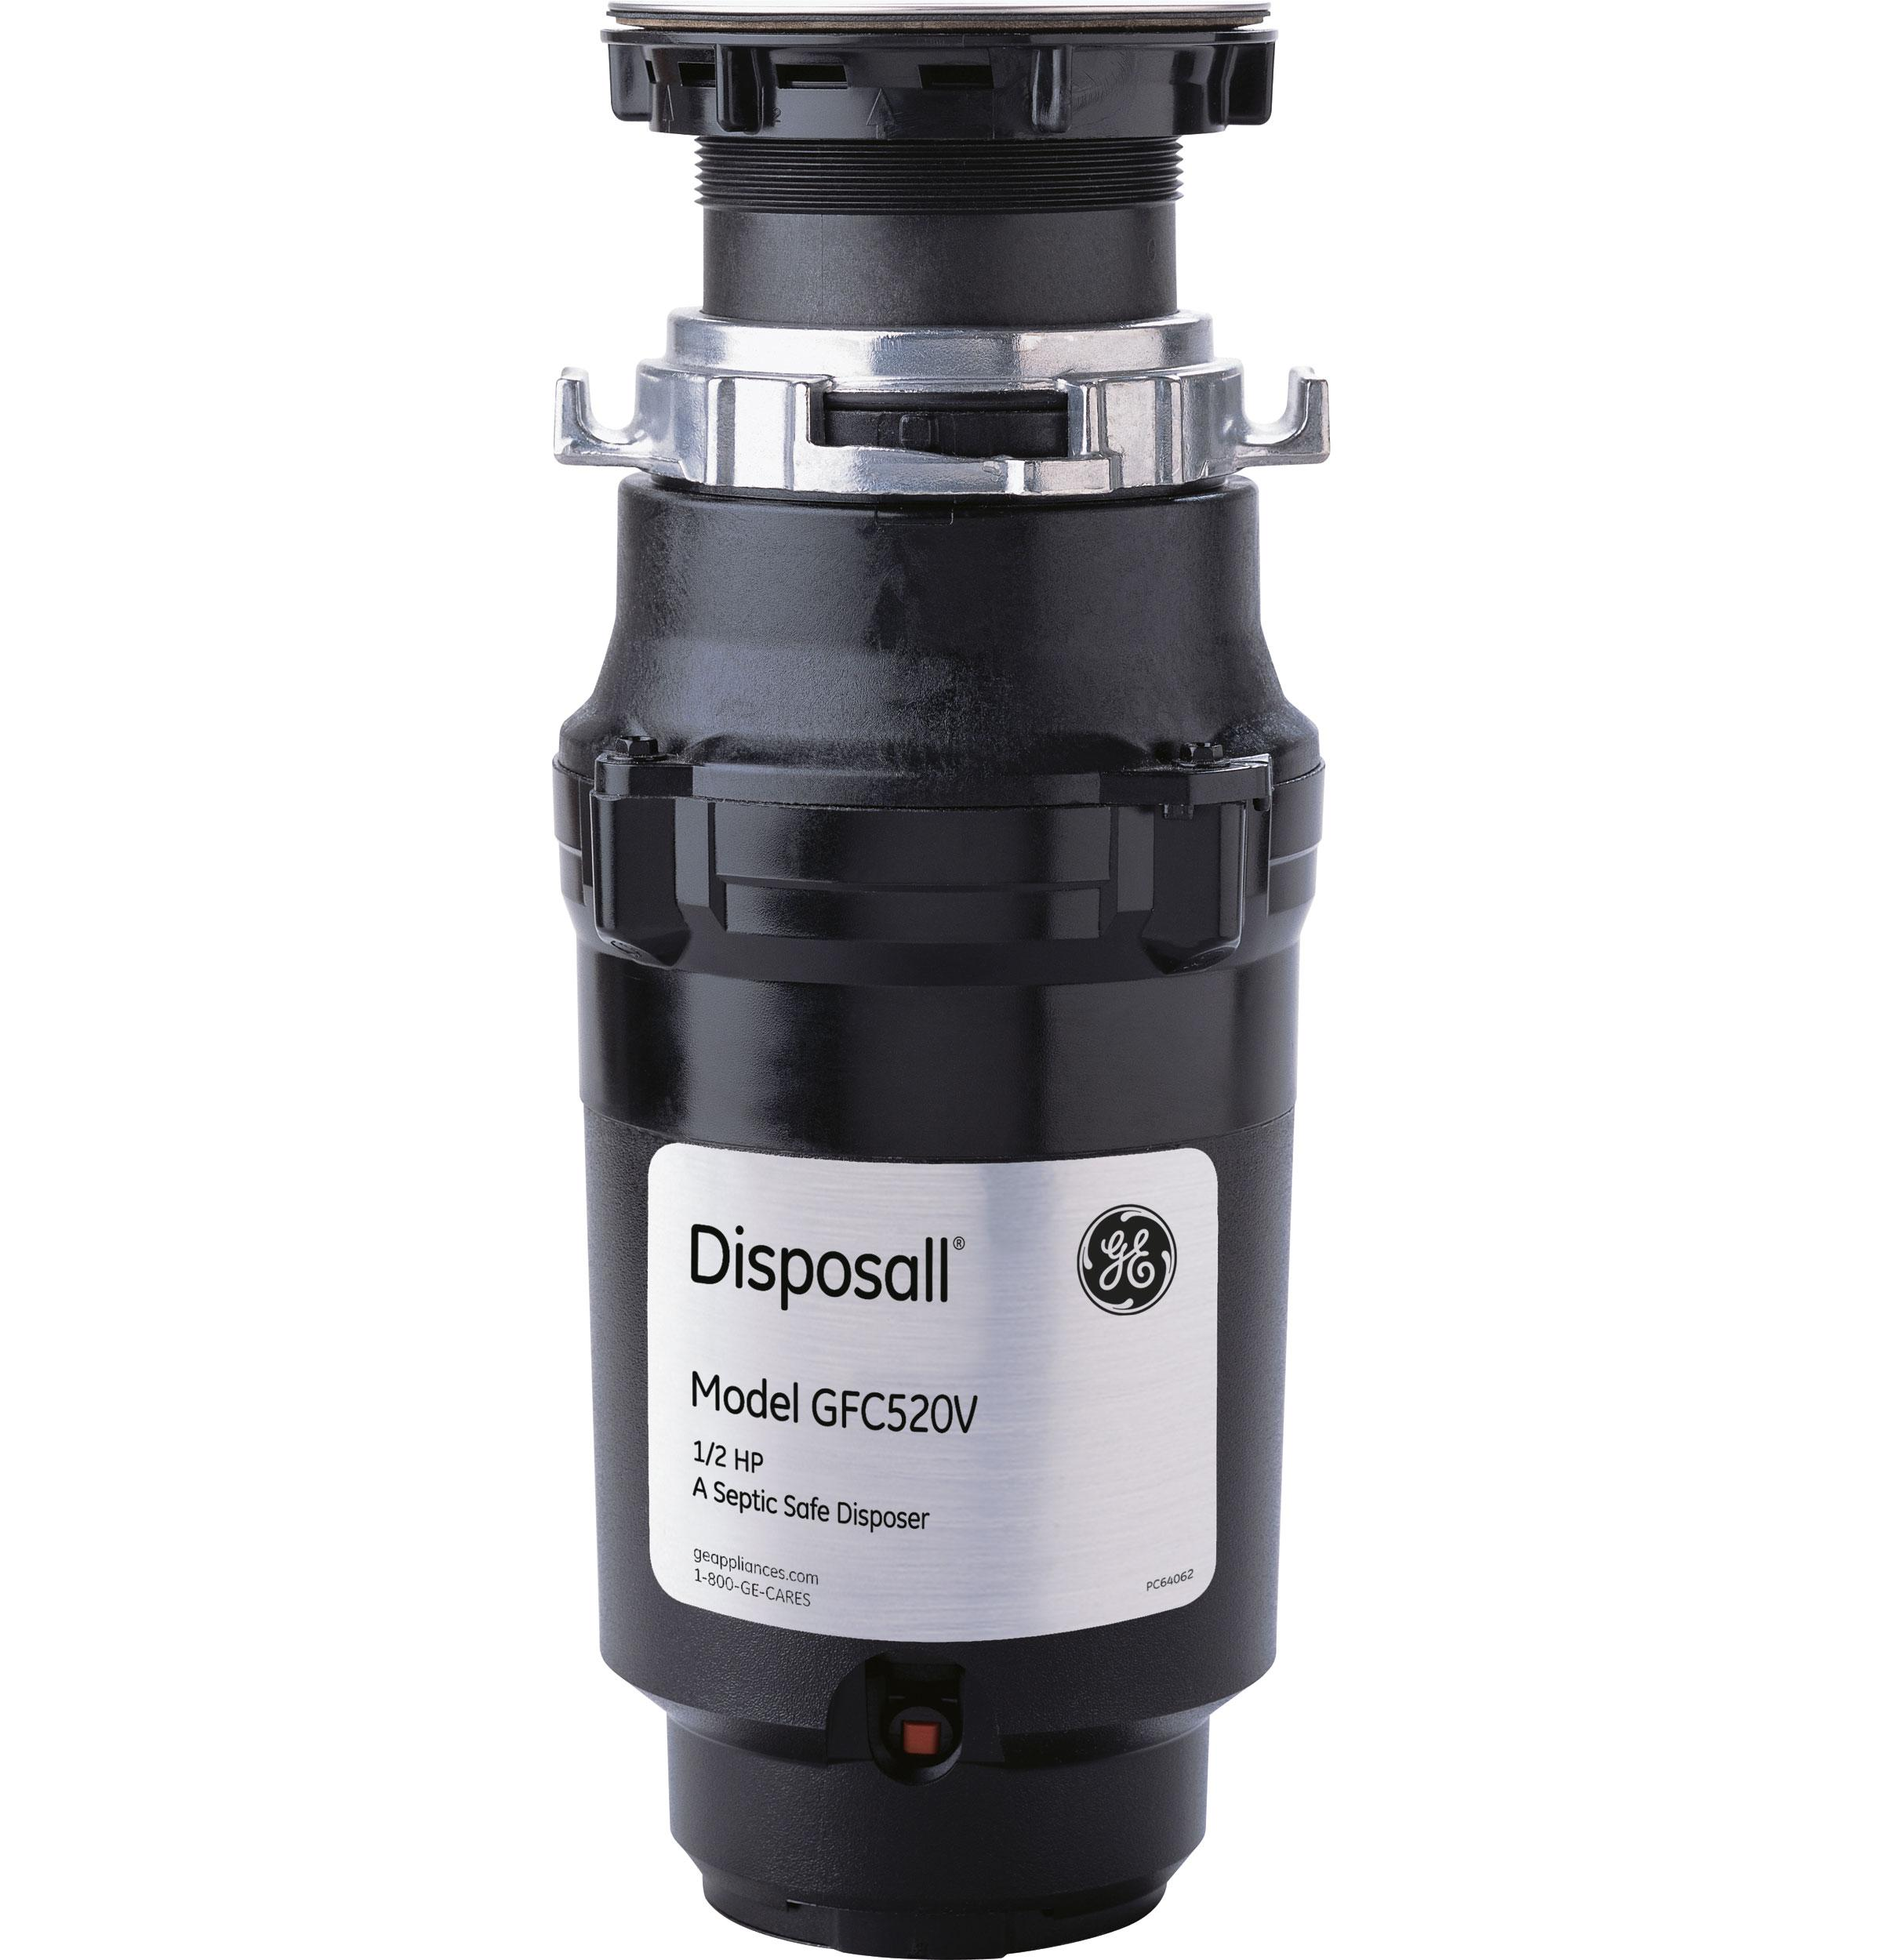 GE(R) 1/2 HP Continuous Feed Garbage Disposer - Non-Corded